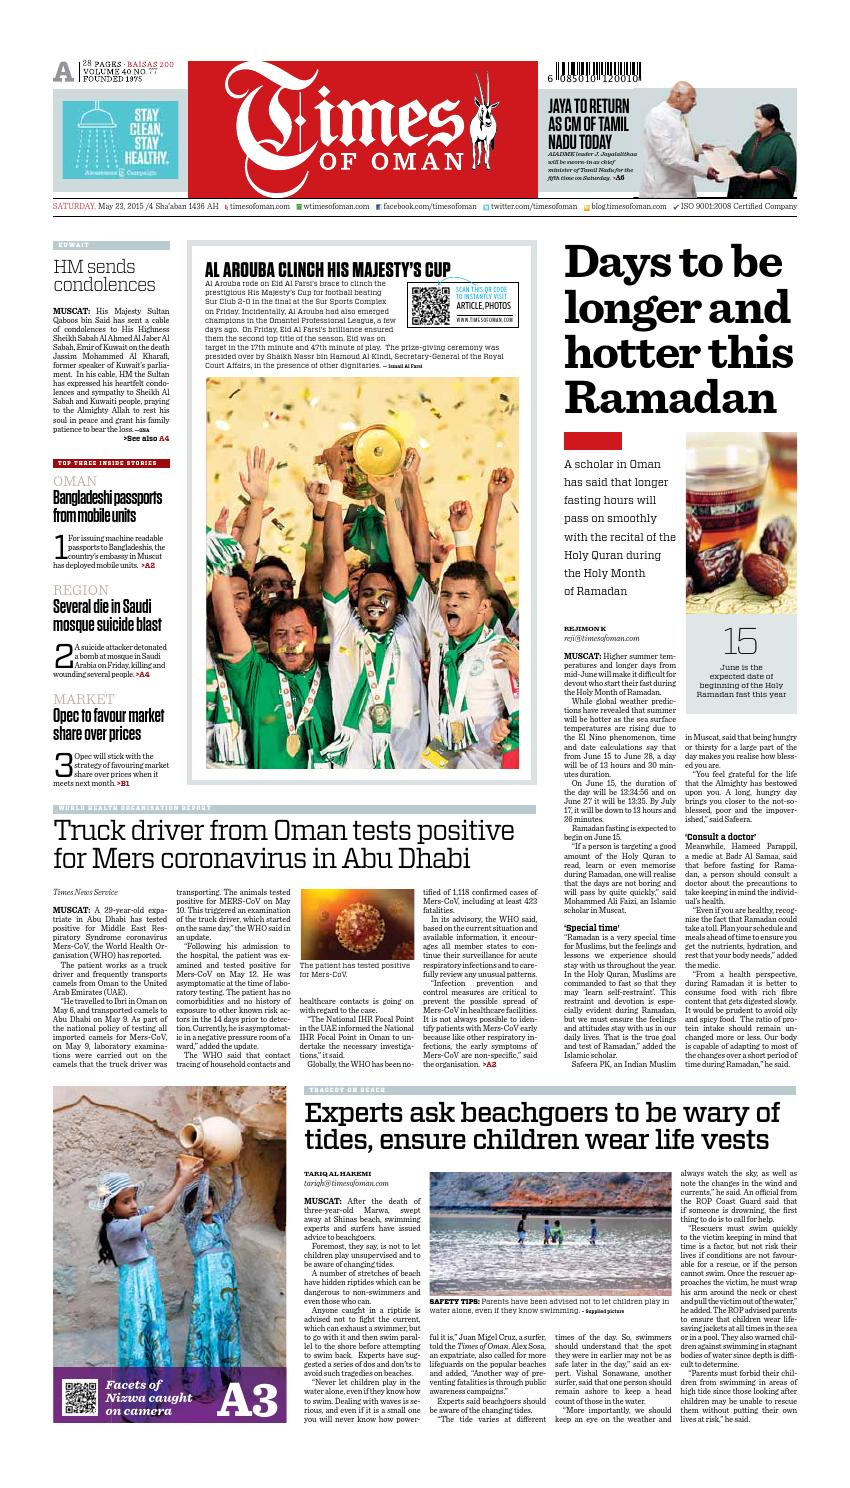 Times of Oman - May 23, 2015 by Muscat Media Group - issuu